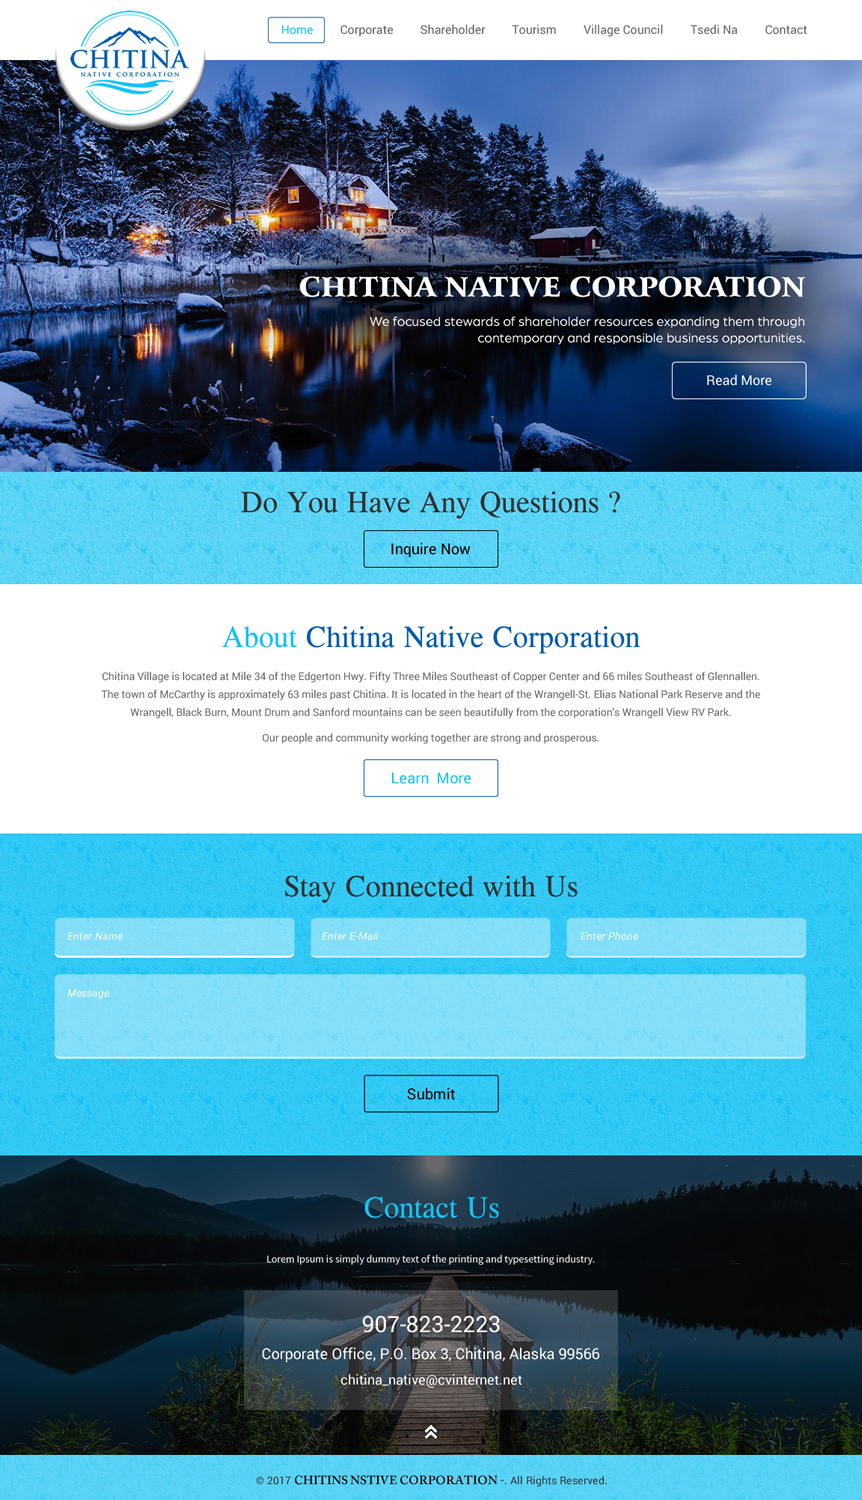 Modern, Professional, Business Web Design for Chitina Native